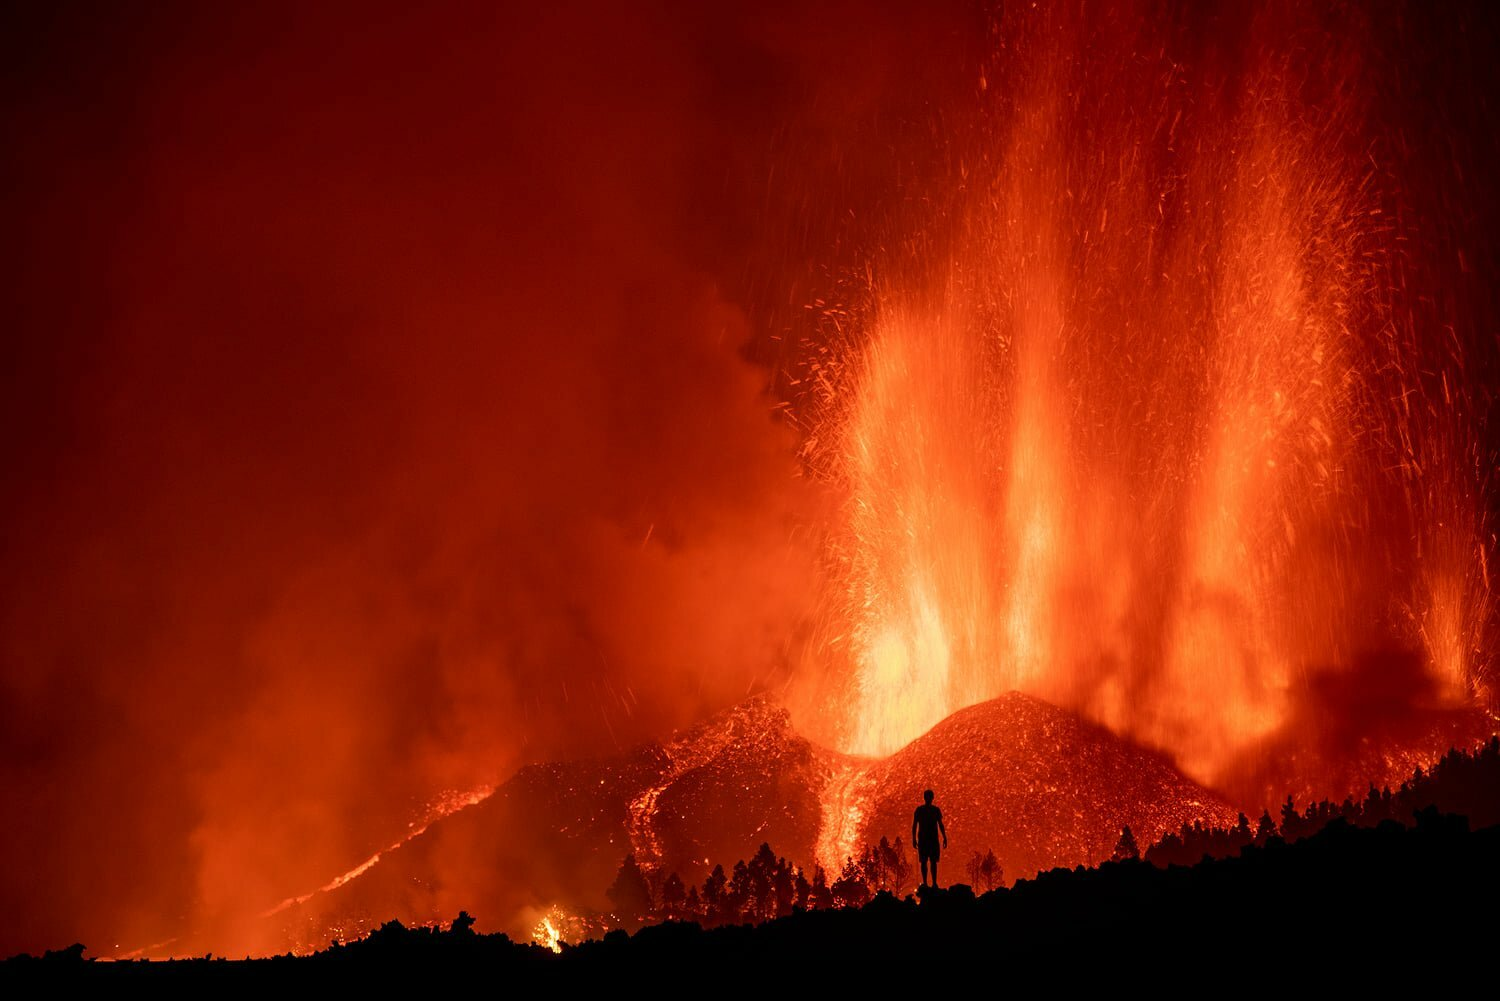 """Involcan make first estimate of sulphur dioxide emissions on La Palma """"with lava flows up to 6 meters high that slowly advance unstoppably"""""""